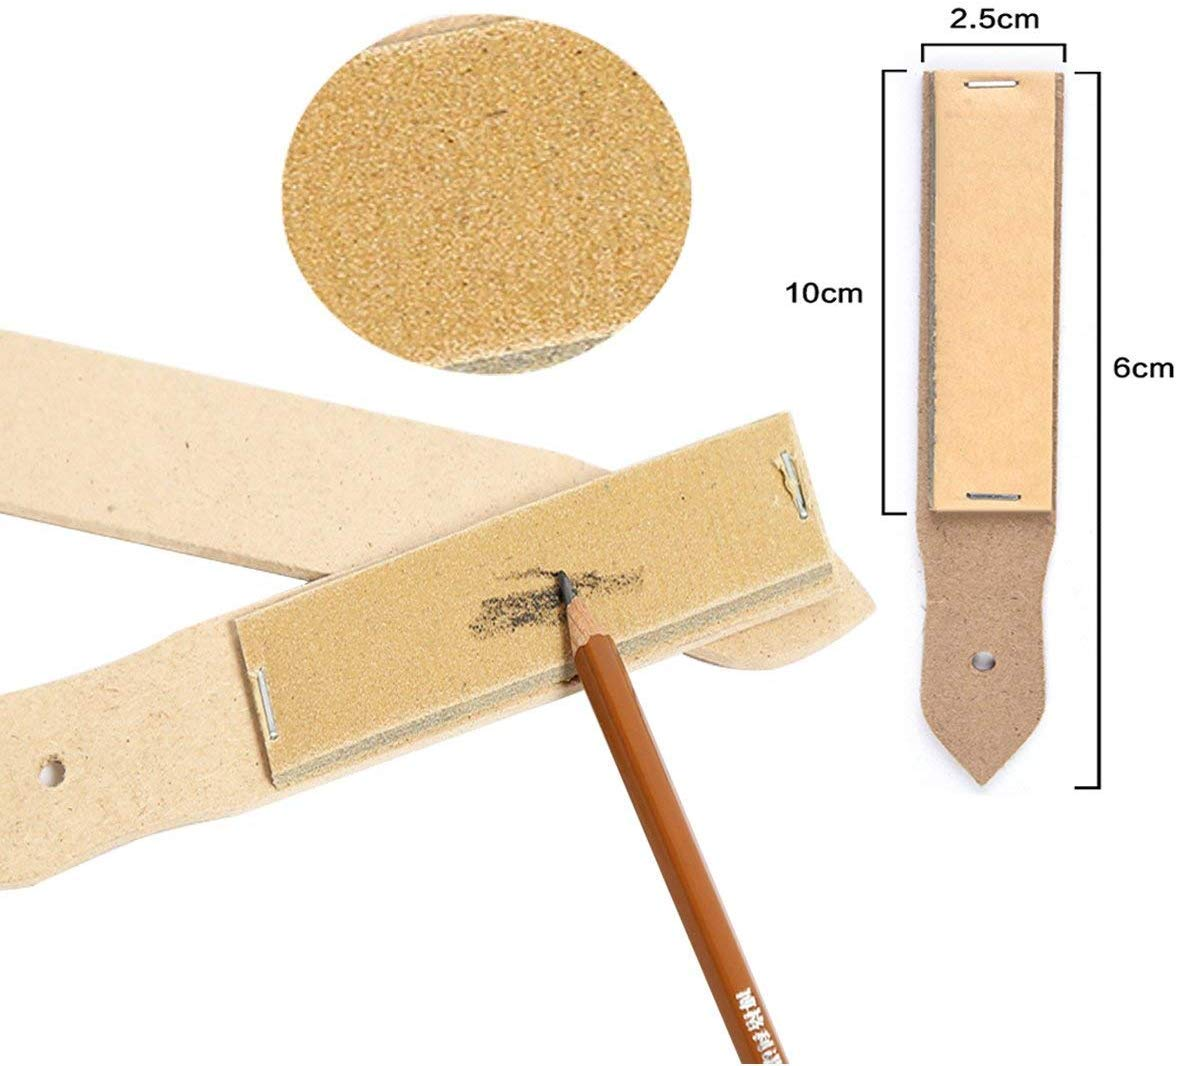 22 Pcs Blending Stumps and Tortillions Set with 2 Pcs Sandpaper Pencil Sharpener and 1 Pencil Extension Tool Art Drawing Tools for Student Sketch Drawing Accessories